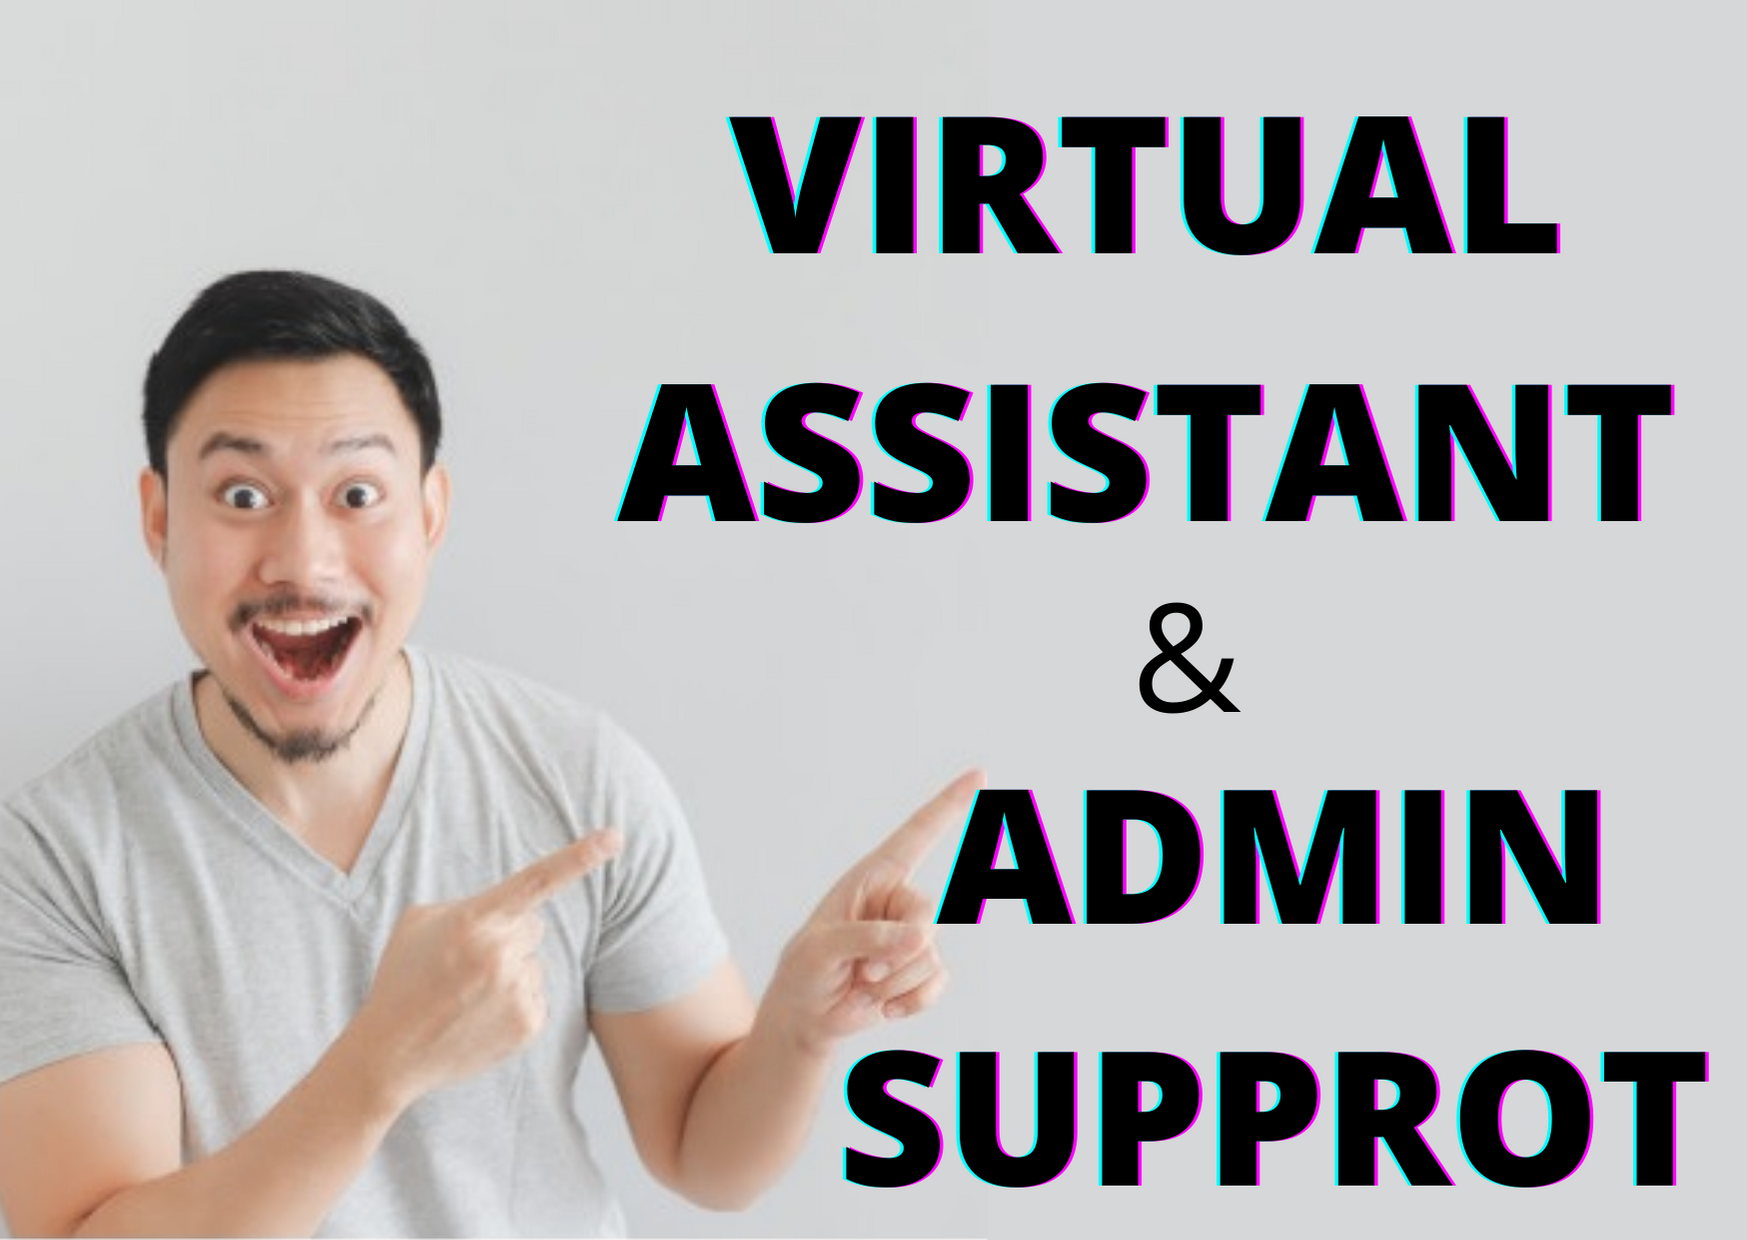 I will be your personal virtual assistant and provide you data entry services